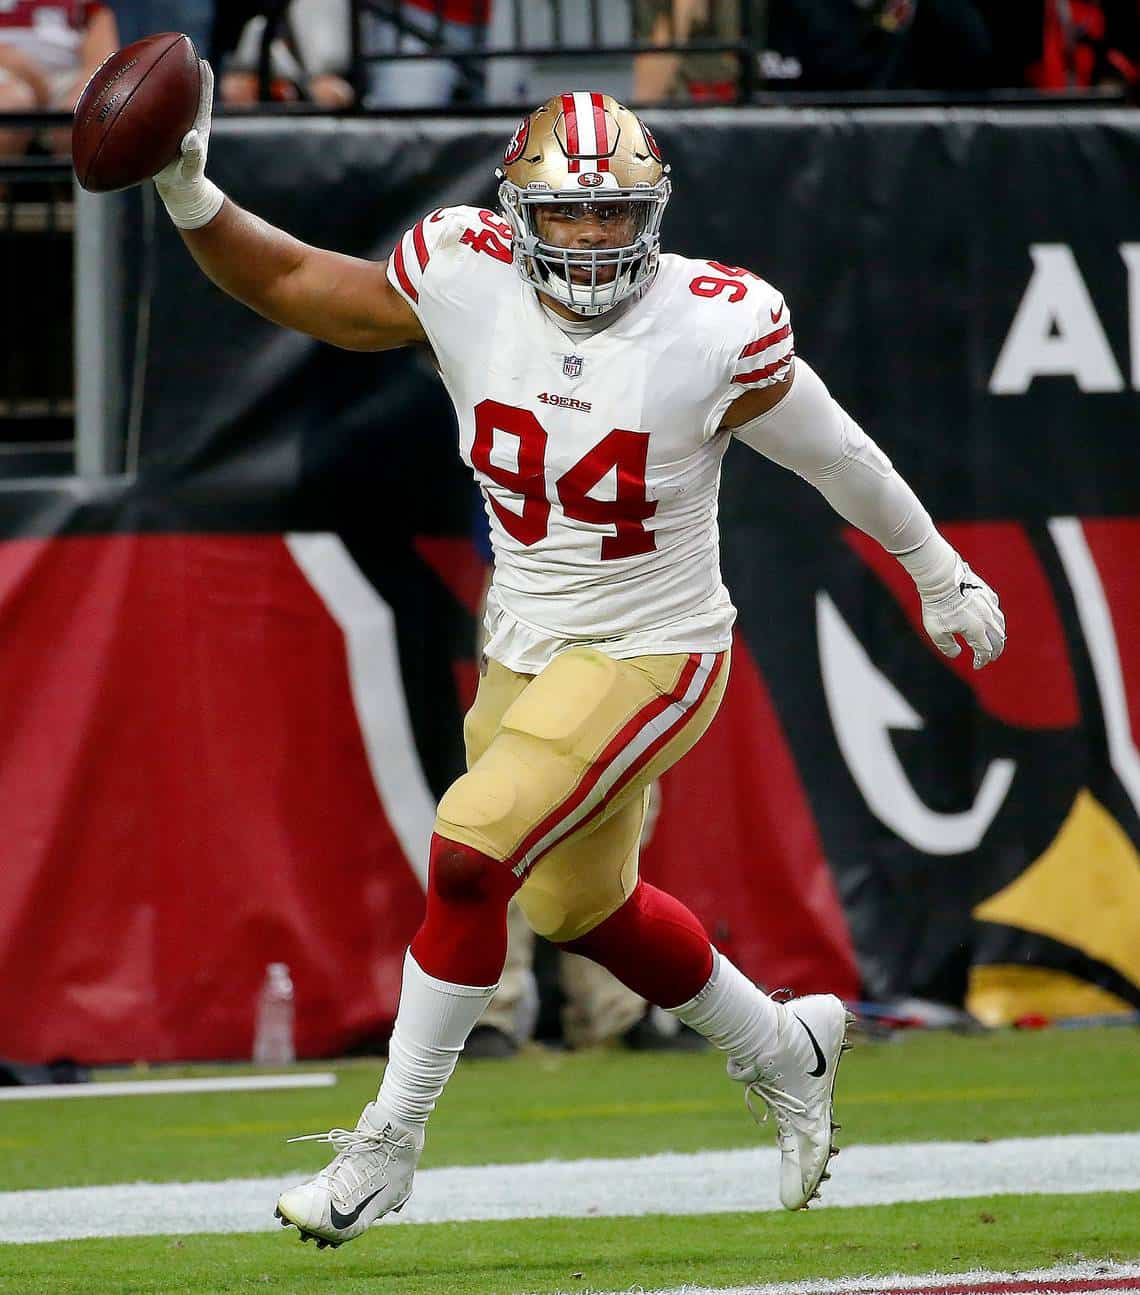 San Francisco 49ers EDGE defender Solomon Thomas